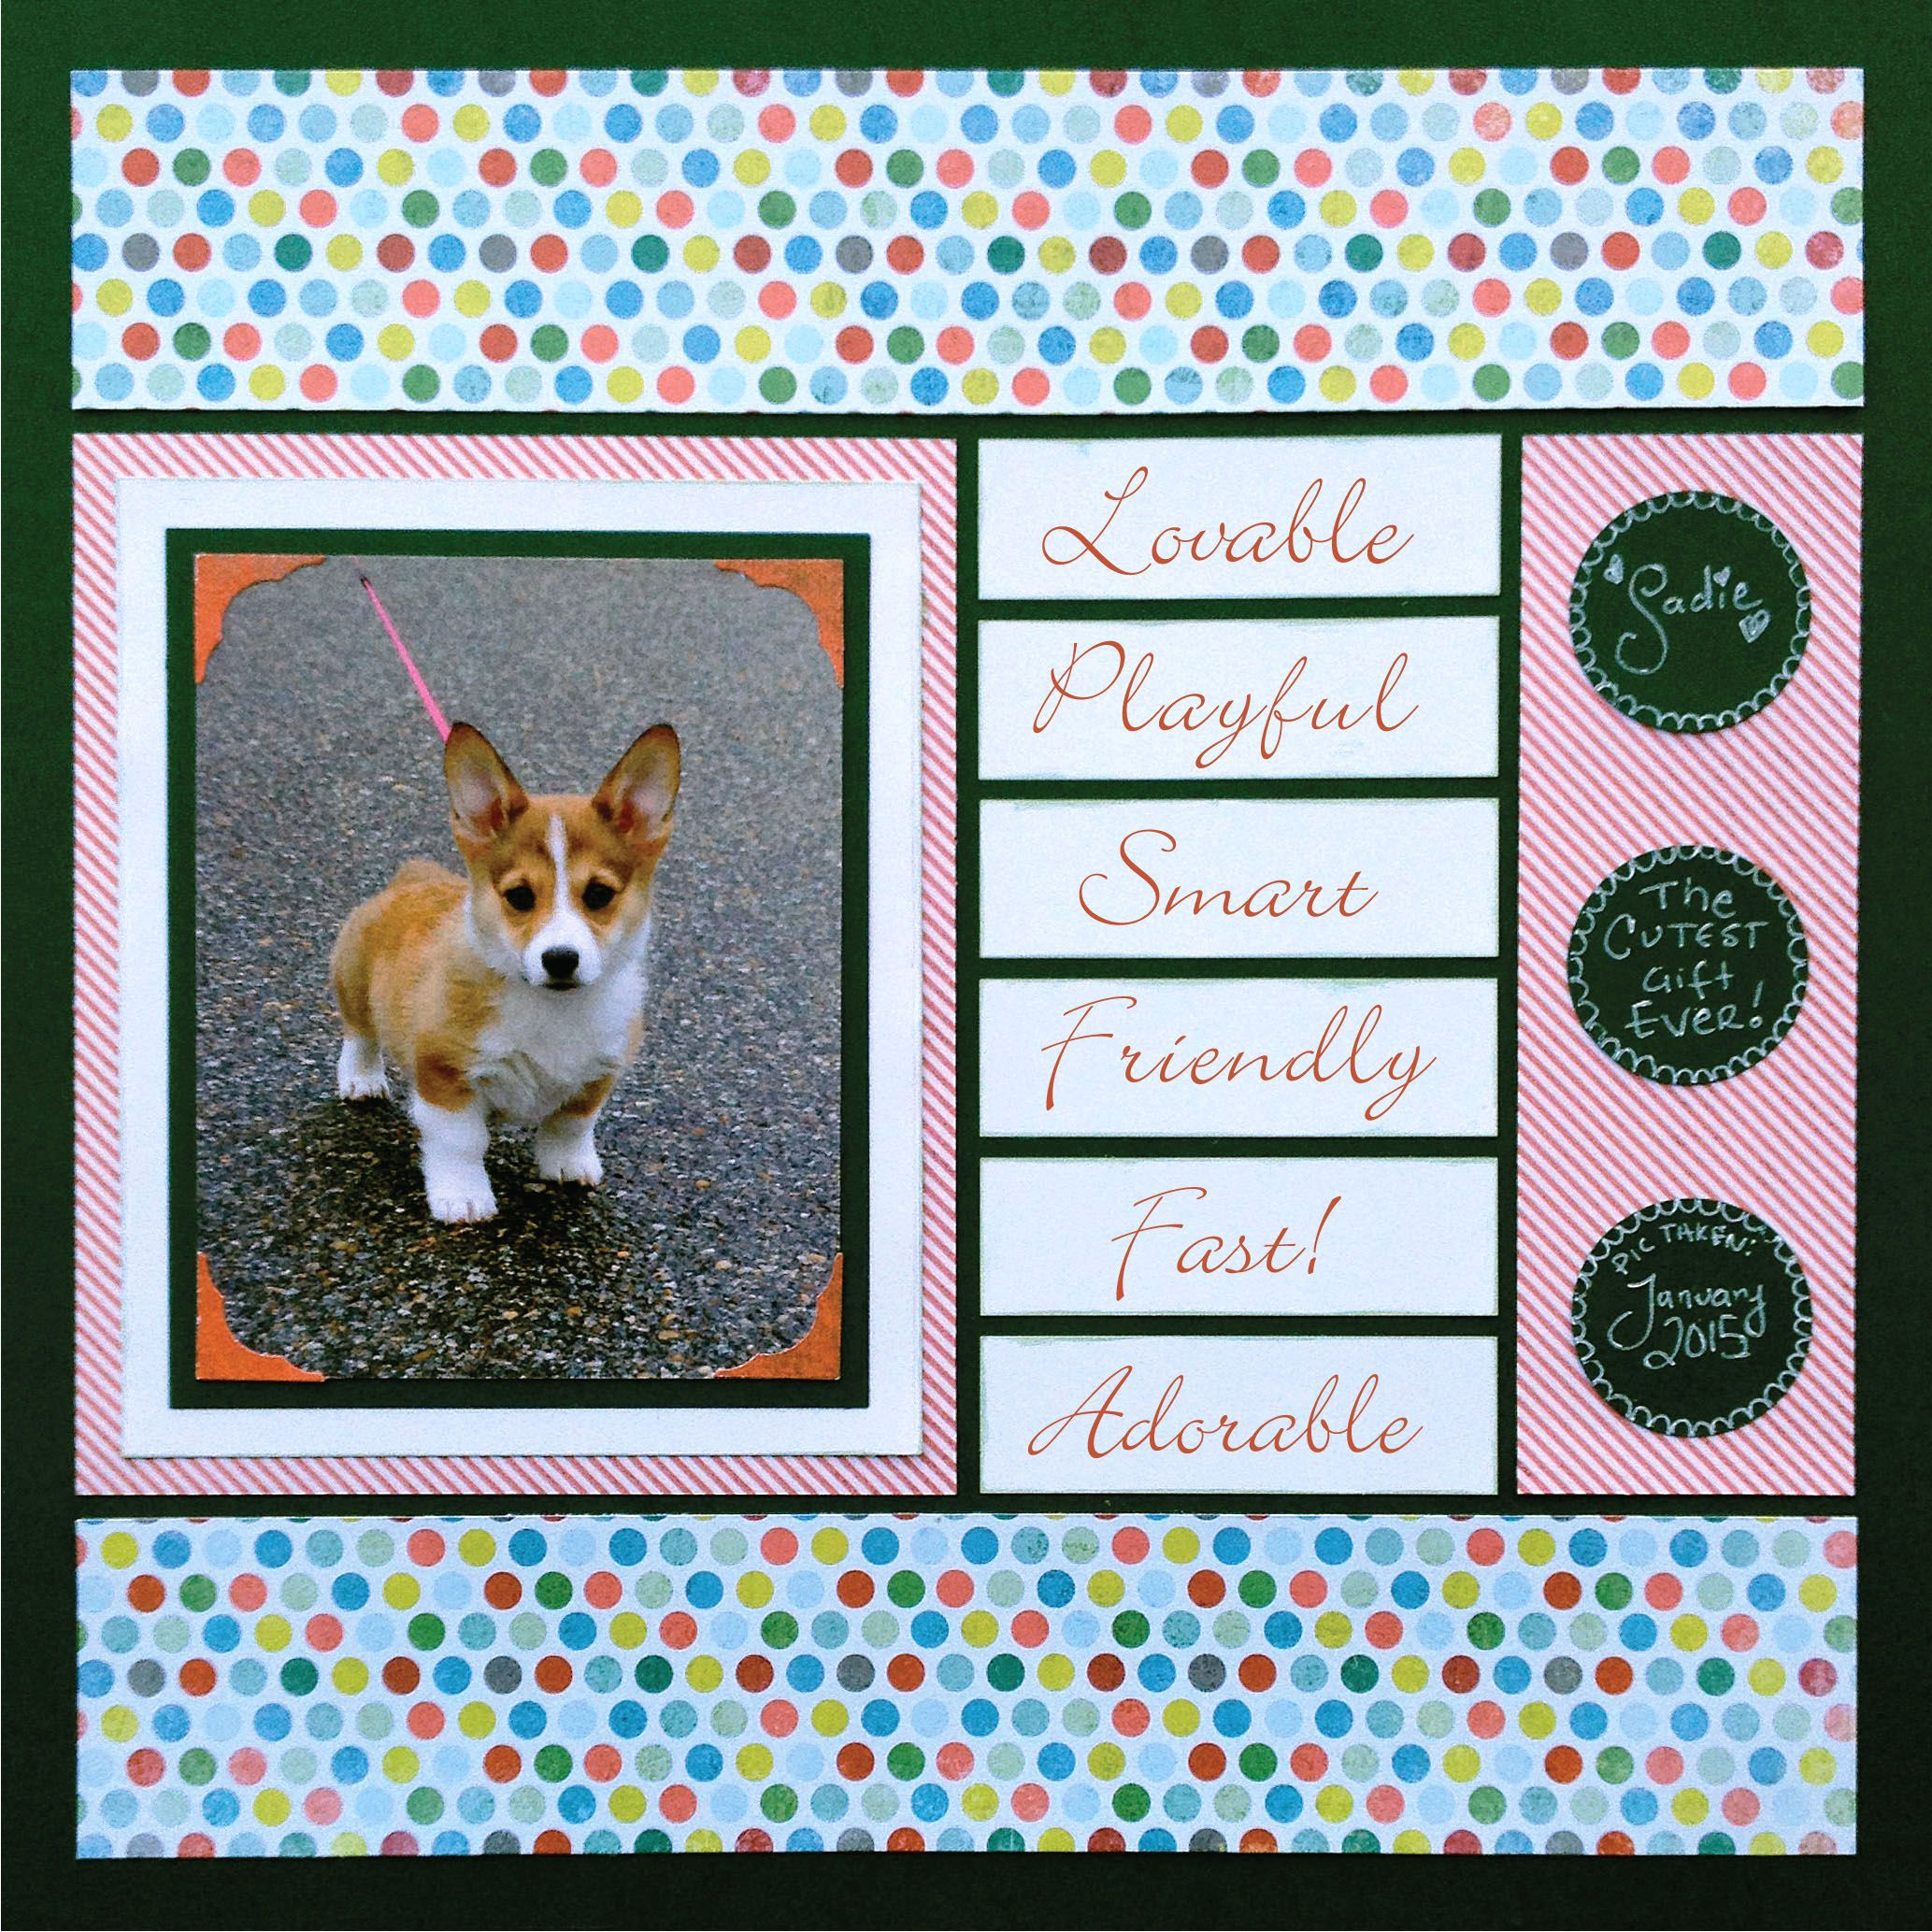 Scrapbook ideas list - Holiday Scrapbook Layouts A Puppy For Christmas Love The List And There Is A